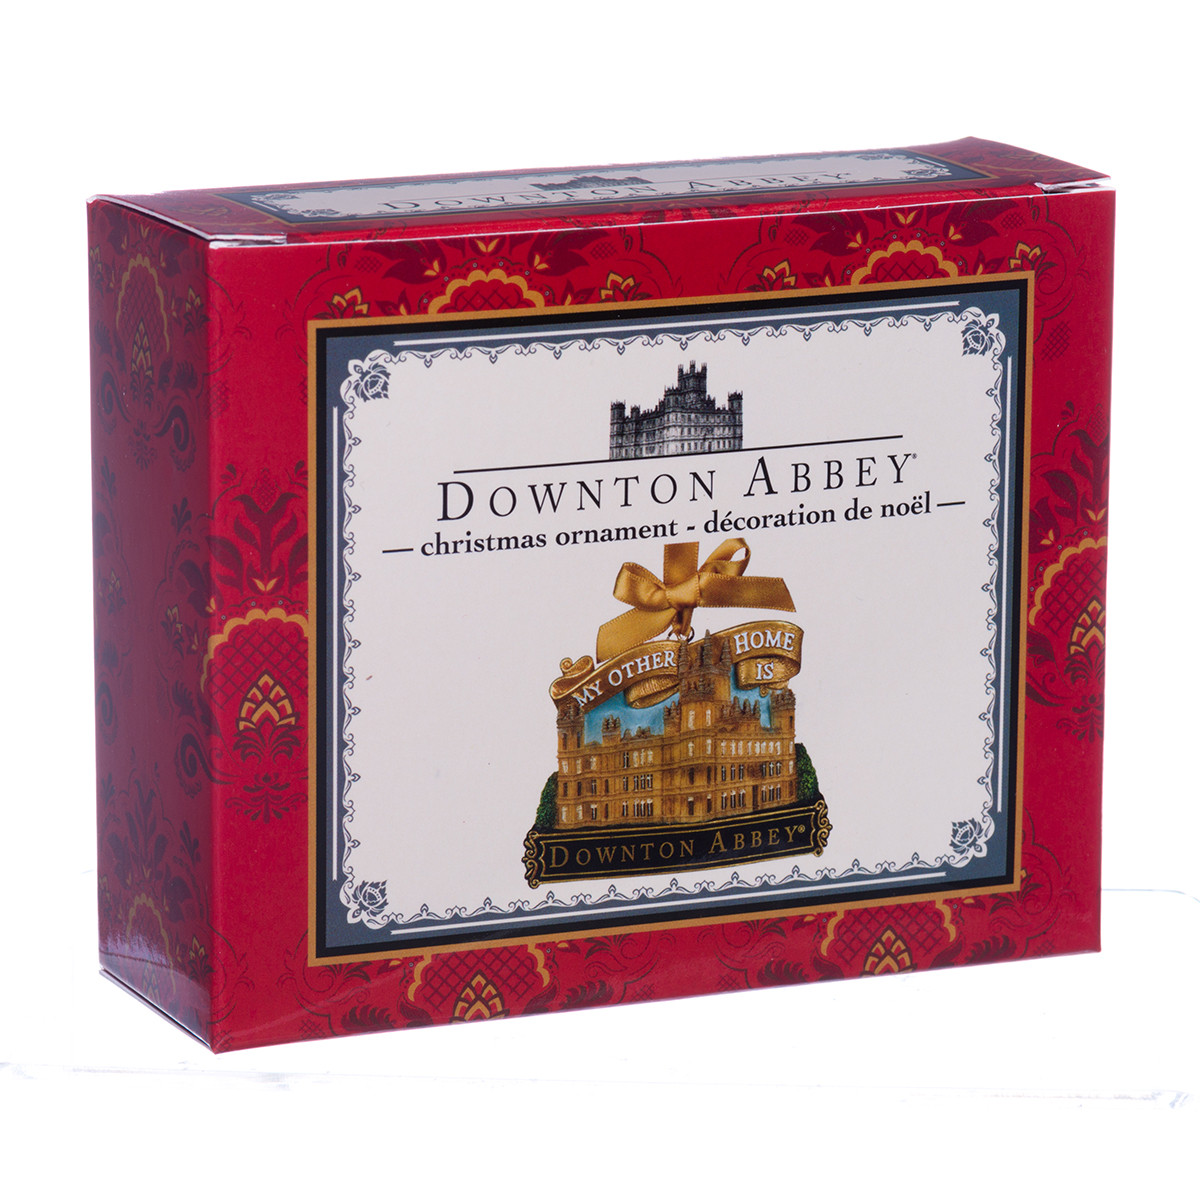 My Other Home Is Downton Abbey - Christmas Ornament - RetroFestive.ca